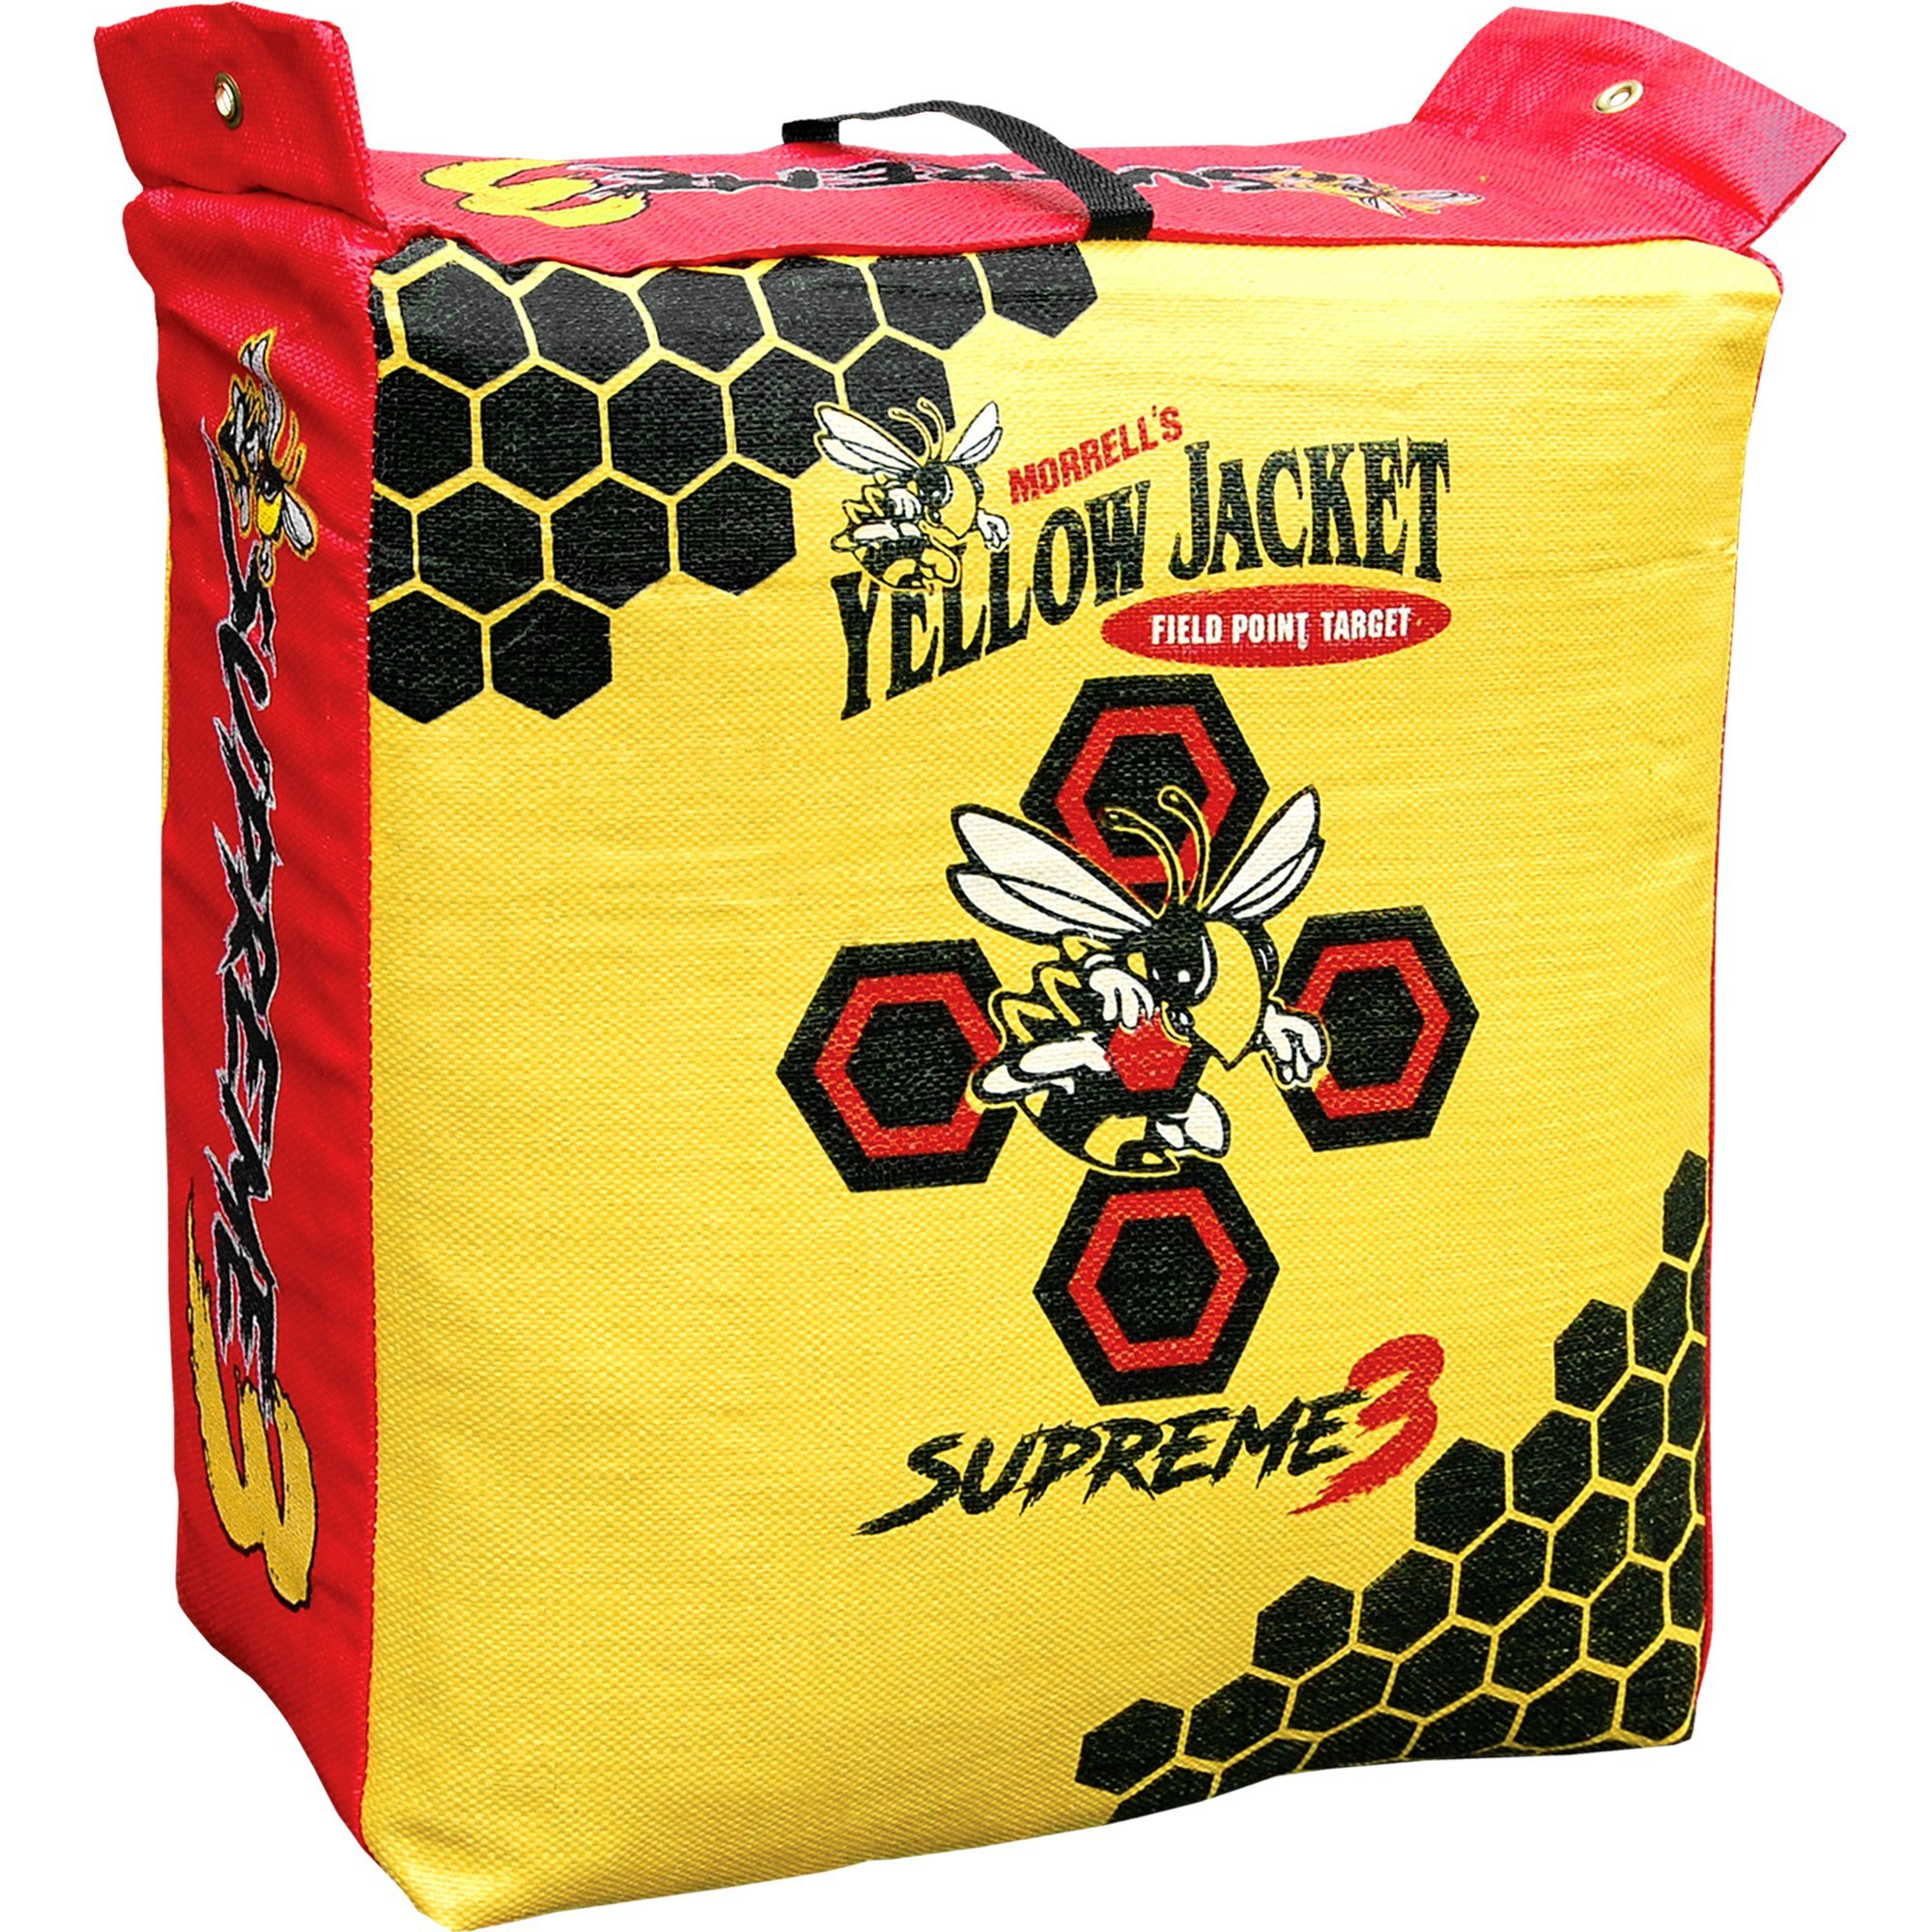 Morrell Yellow Jacket Supreme 3 Field Point Bag Archery Target by Morrell